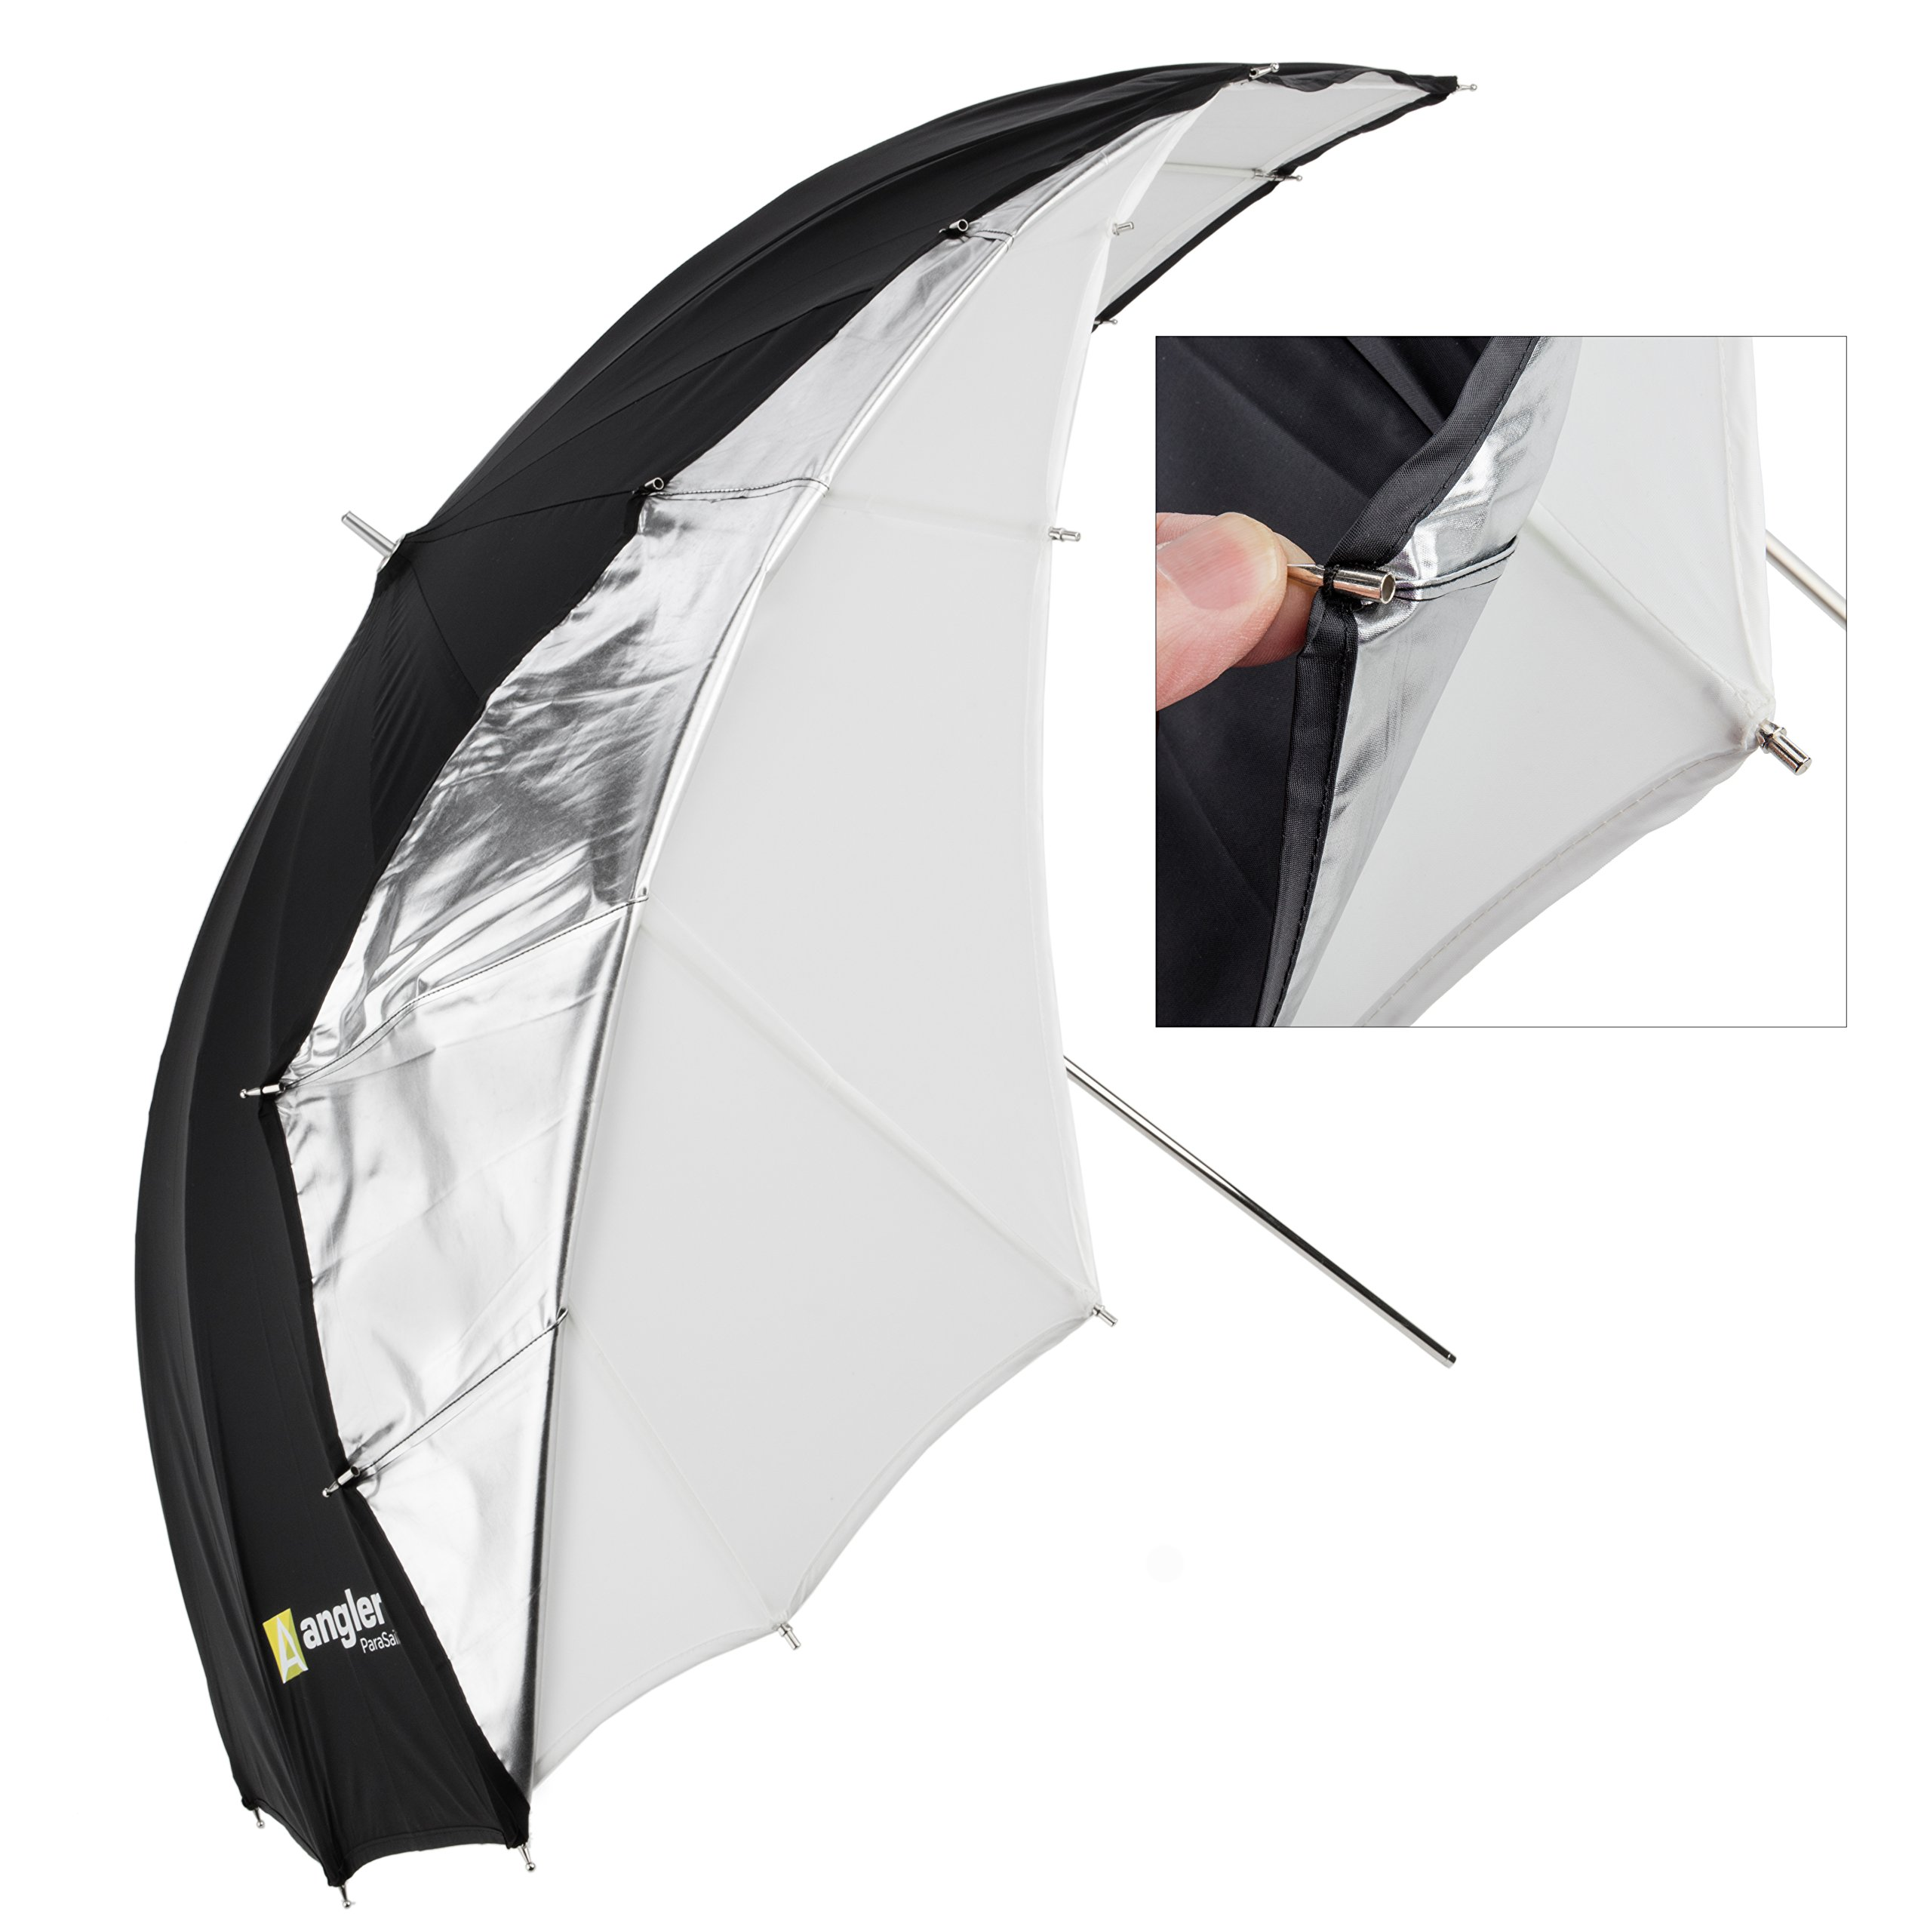 Angler ParaSail Parabolic Umbrella (White with Removable Black/Silver, 45'''')'' by Angler (Image #3)